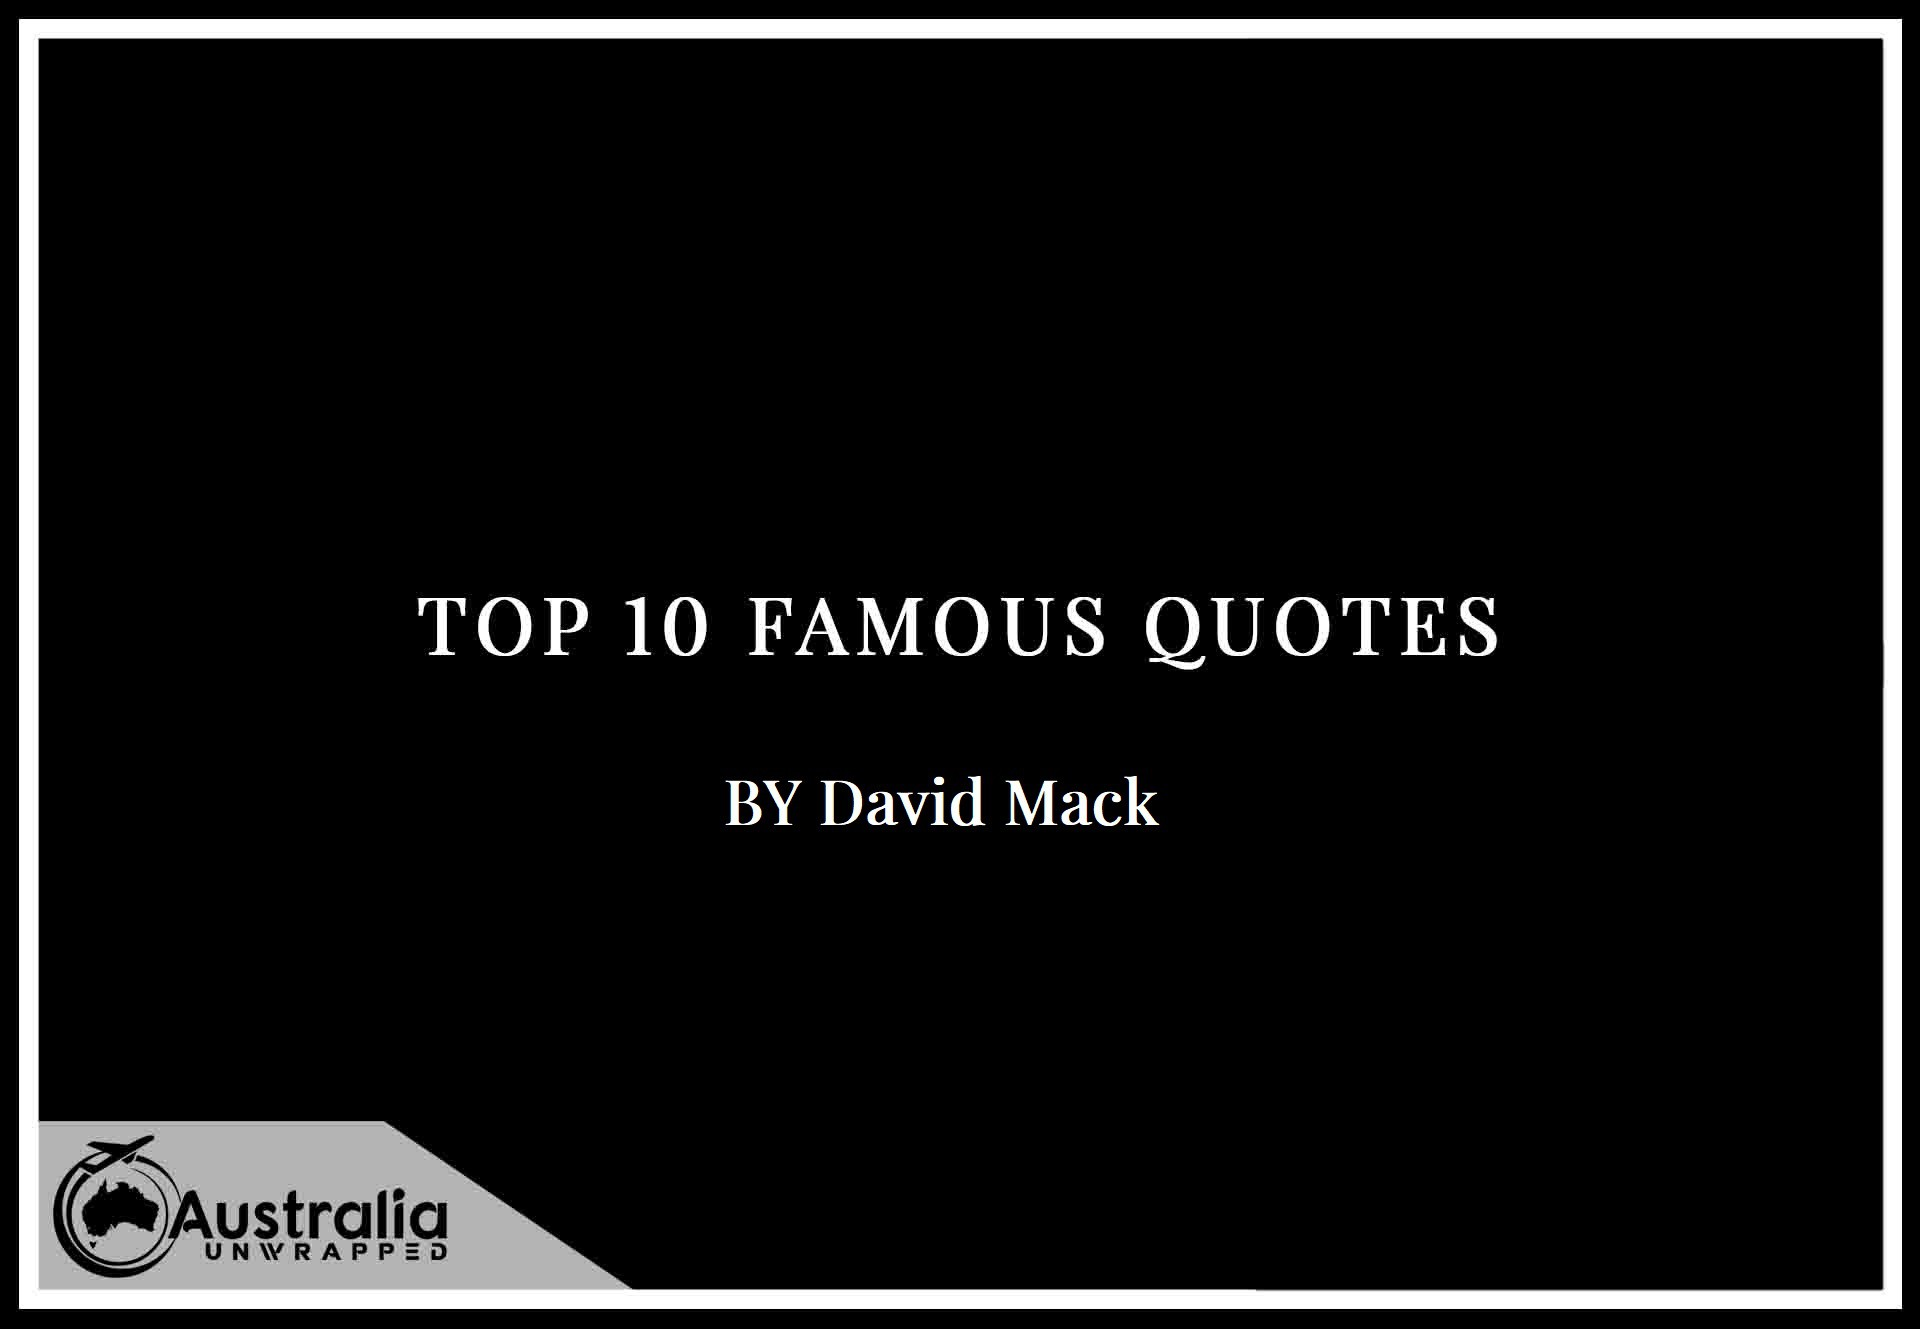 Top 10 Famous Quotes by Author David Mack